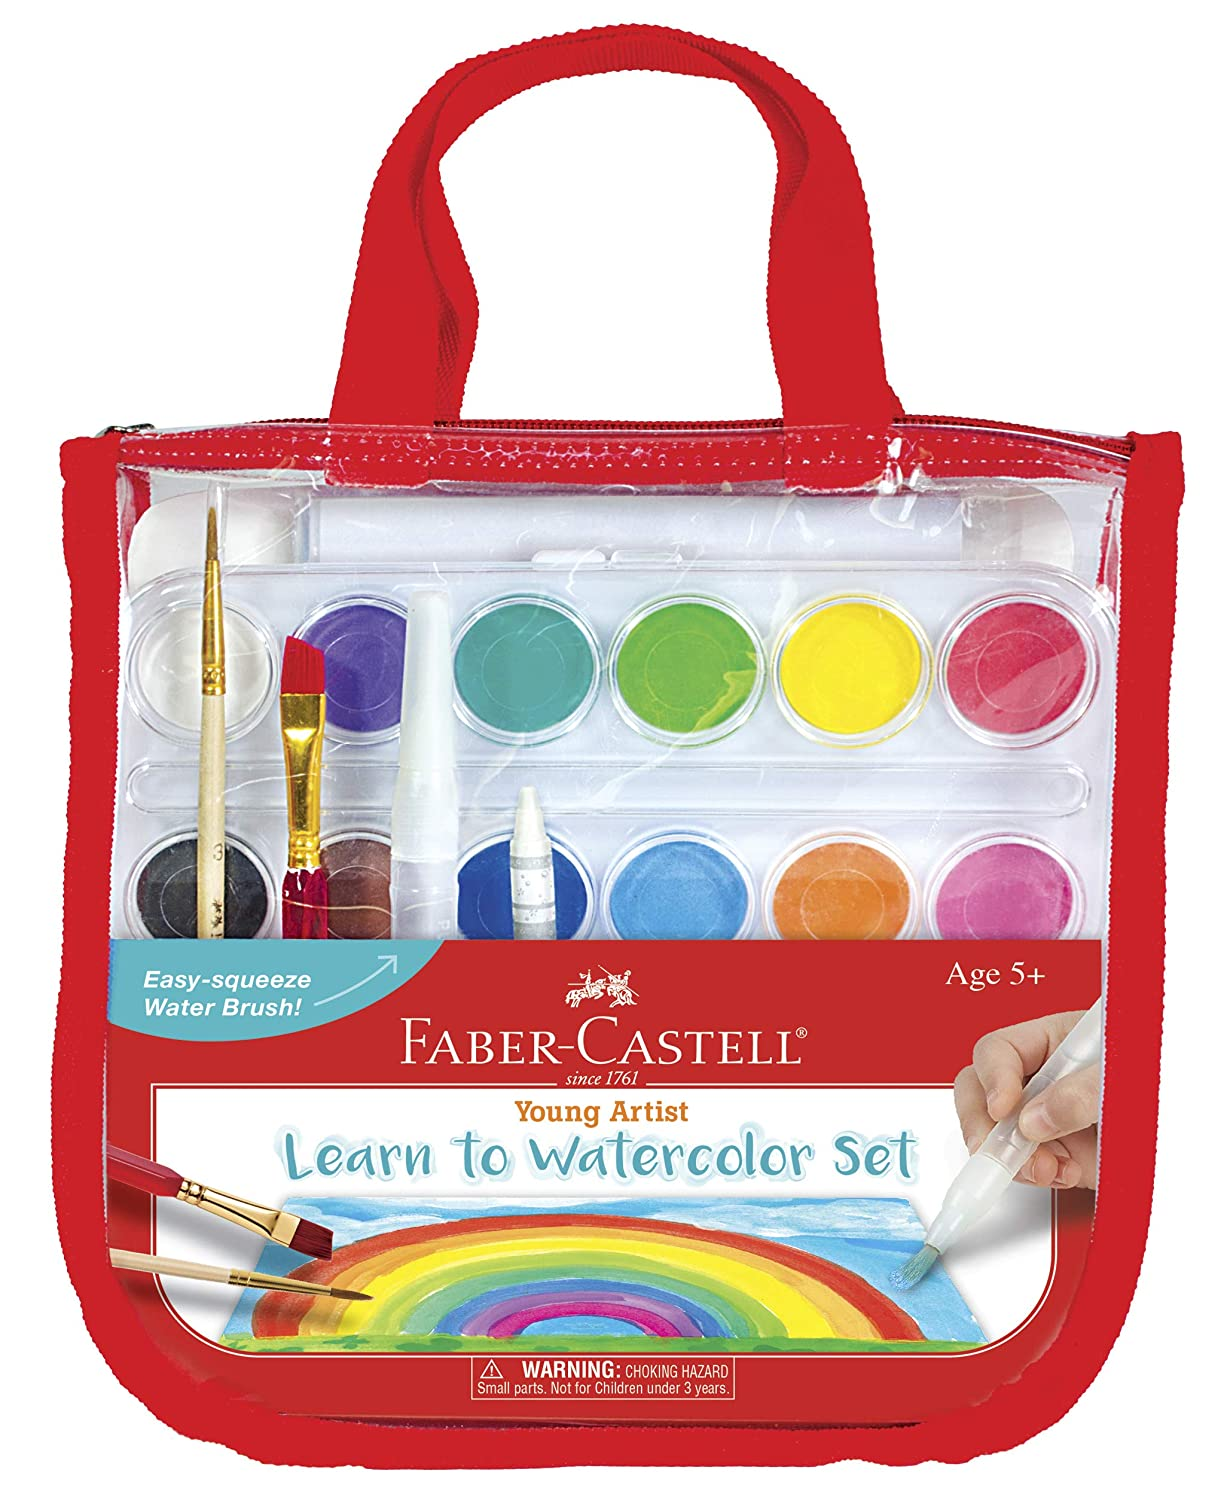 Faber-Castell Young Artist Coloring Gift Set - Premium Art Supplies for Kids in Portable Storage Bag FC14527